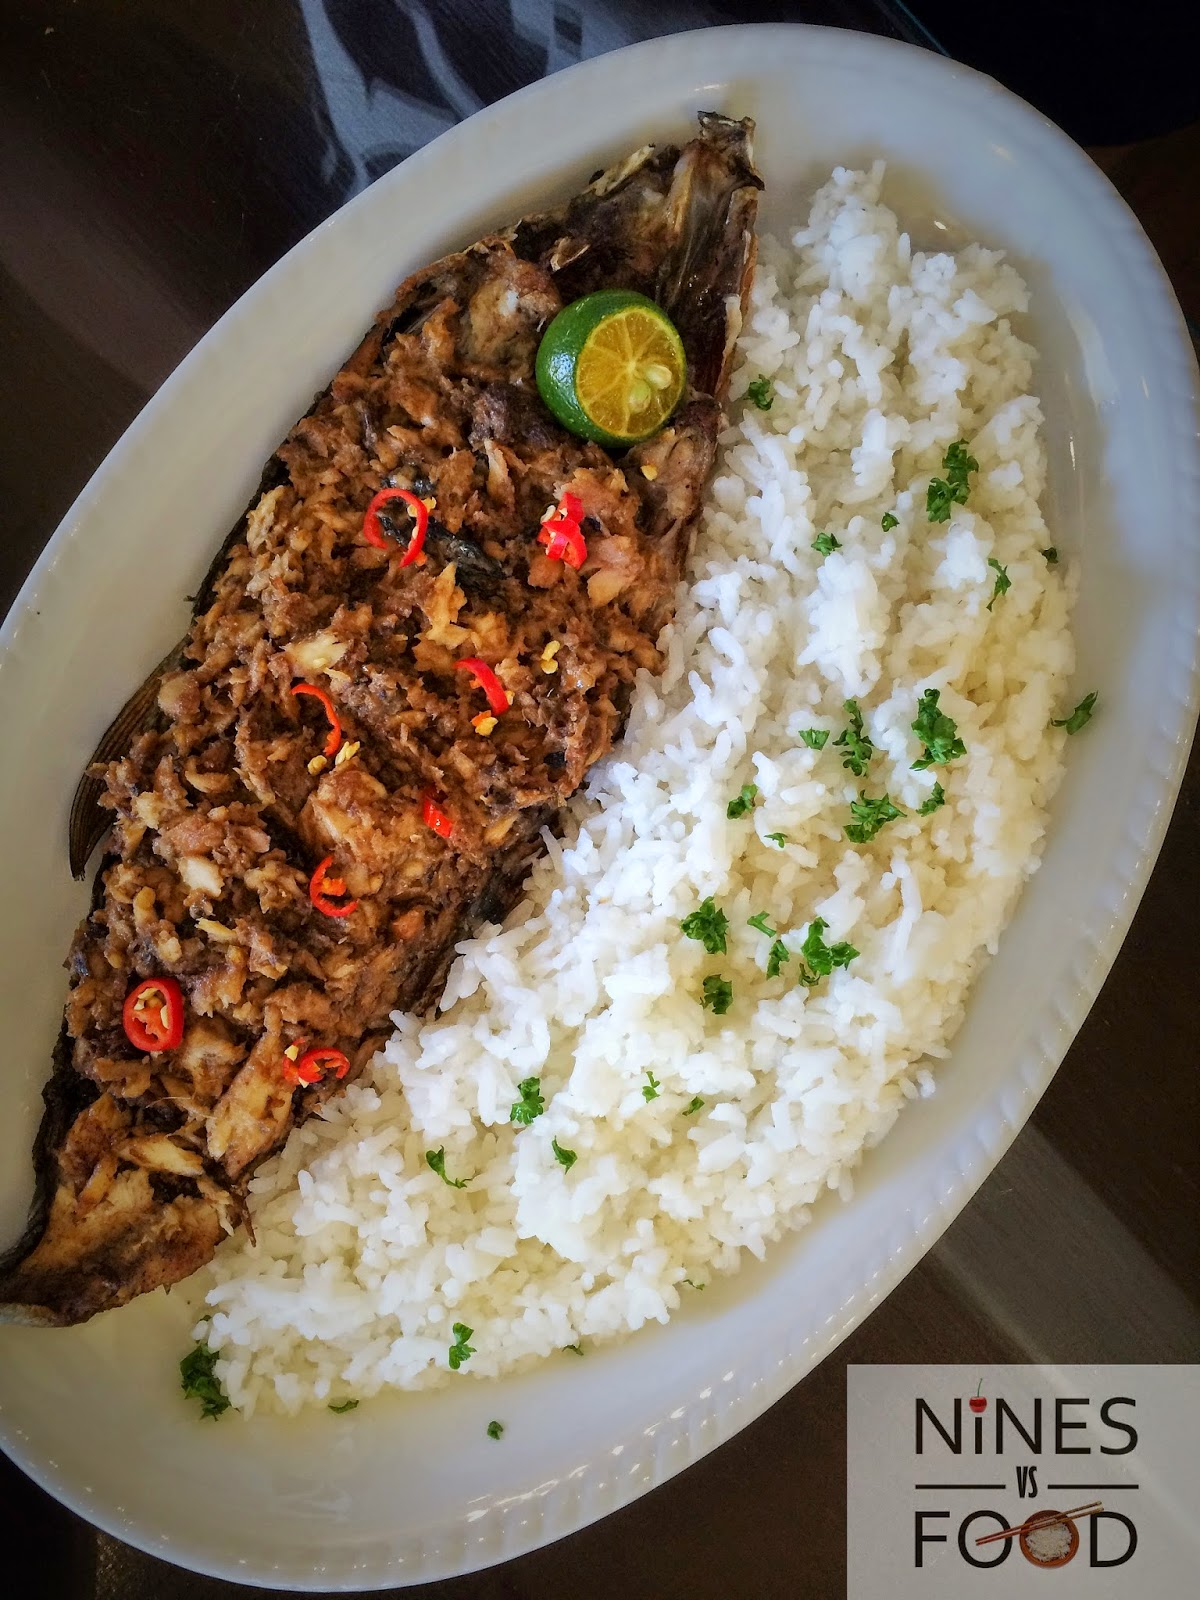 Nines vs. Food - Cafe PaManna Fairview-9.jpg